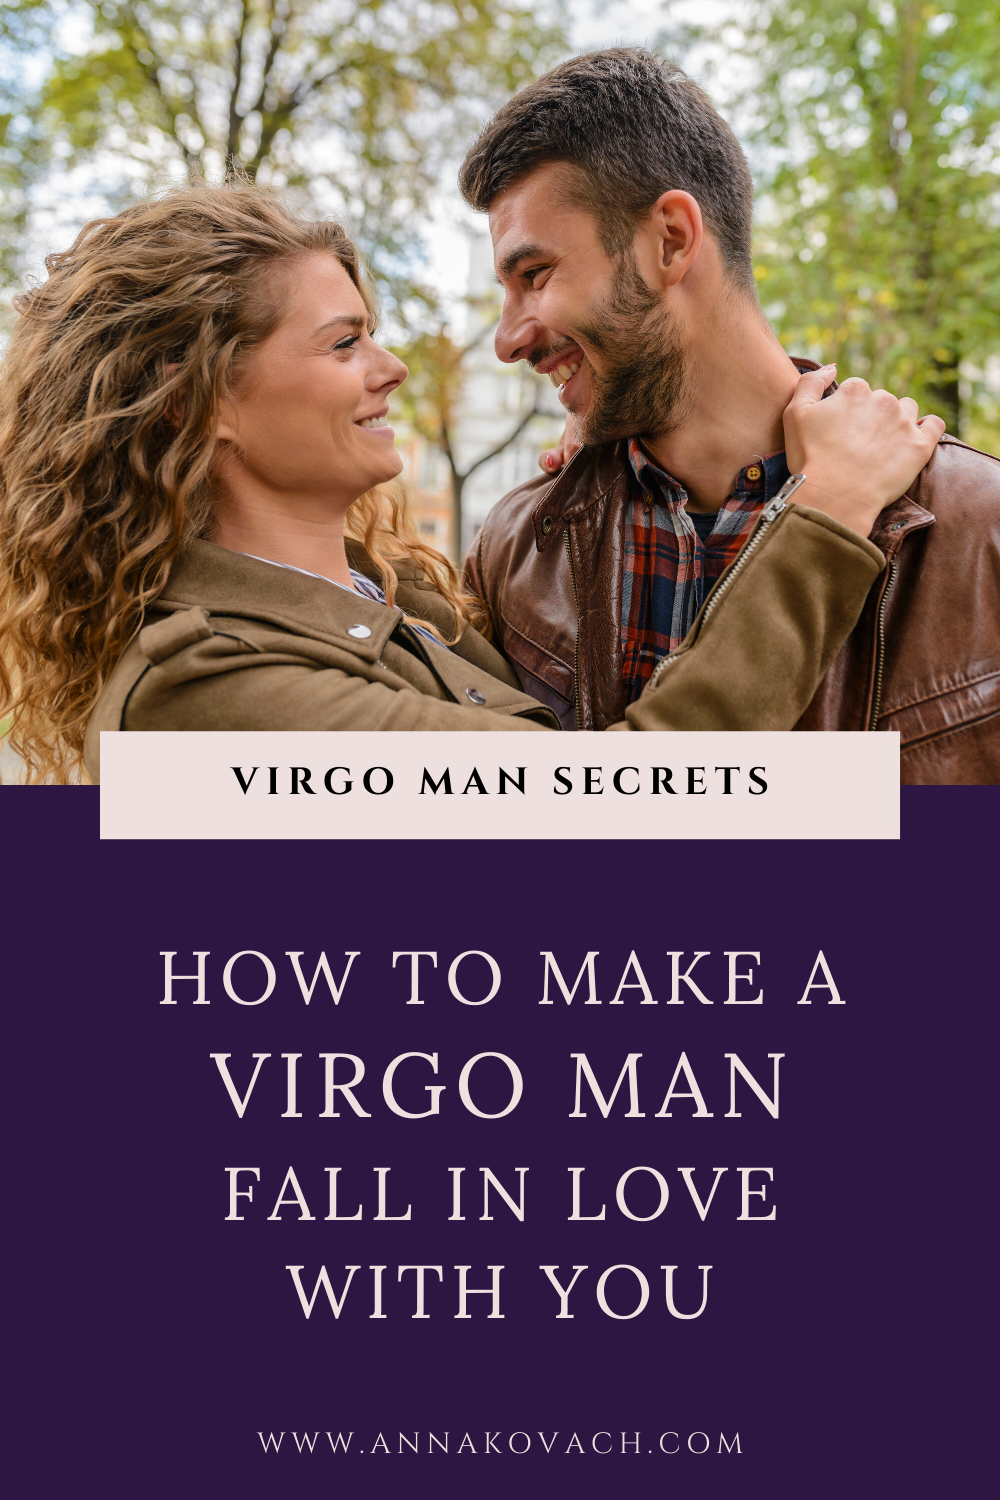 How to Make a Virgo Man Fall in Love With You in 6 Easy